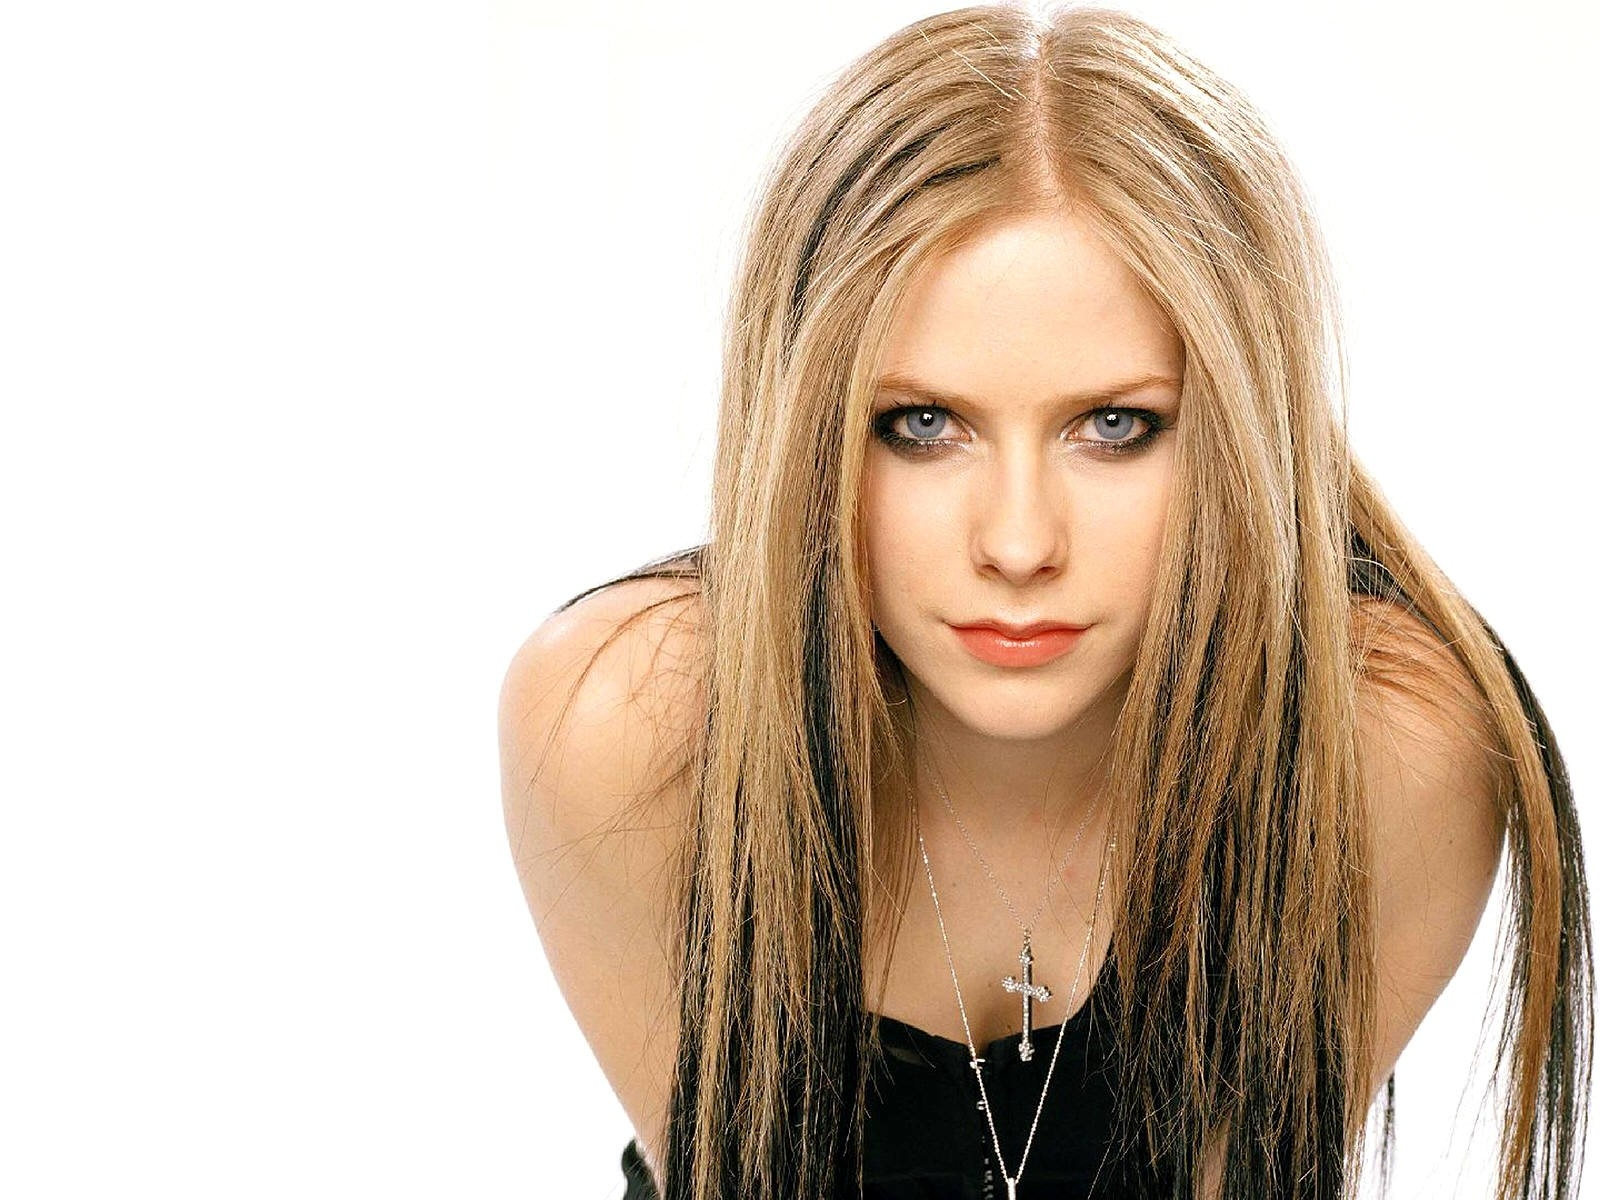 Wallpaper di Avril Lavigne su fondo bianco